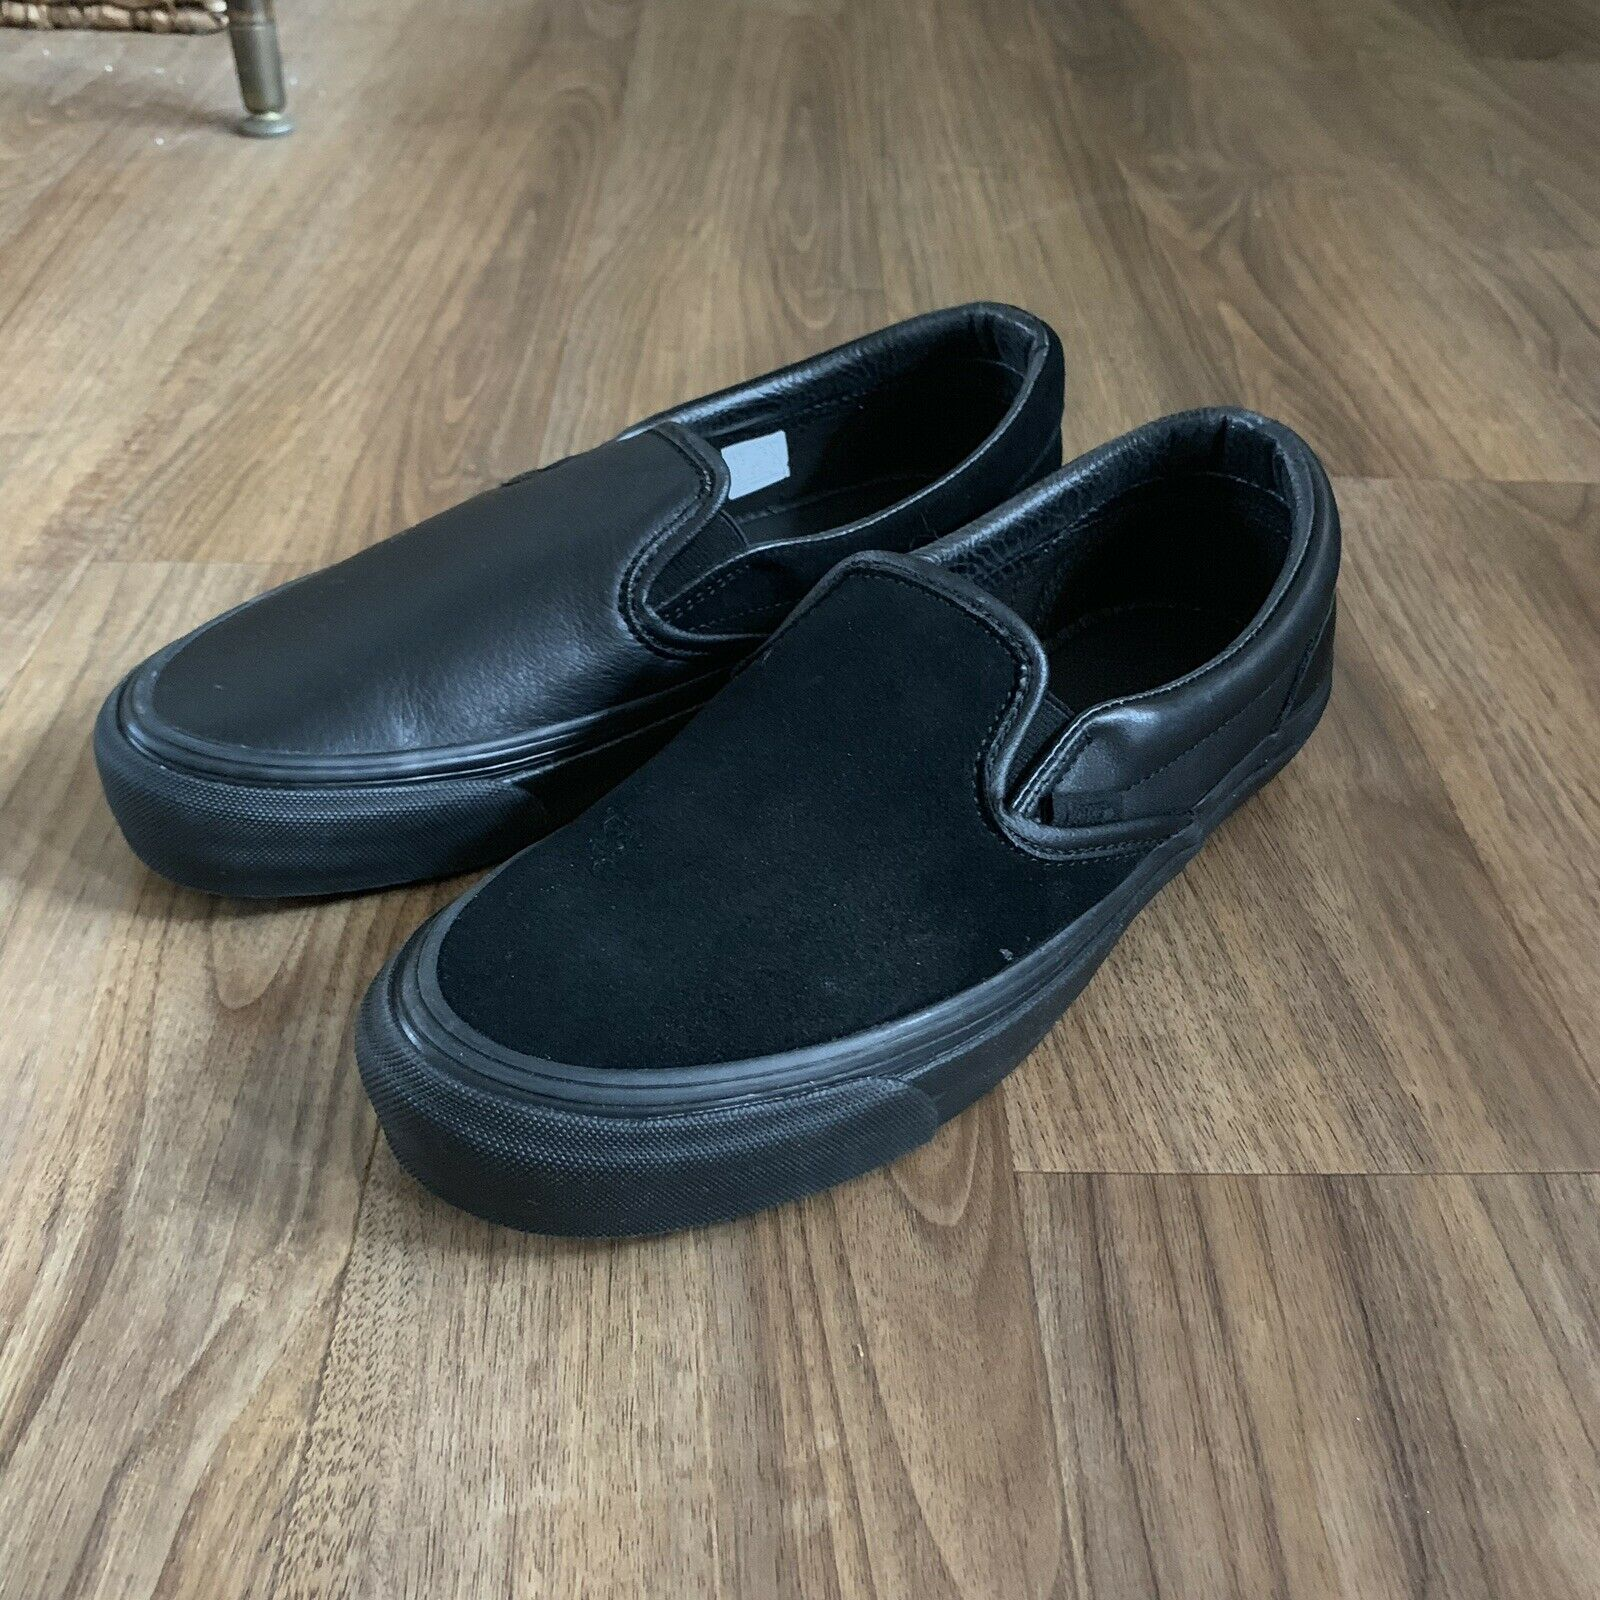 Vans Vault x Engineered Garments OG Classic  Slip On LX Black Size 7.5